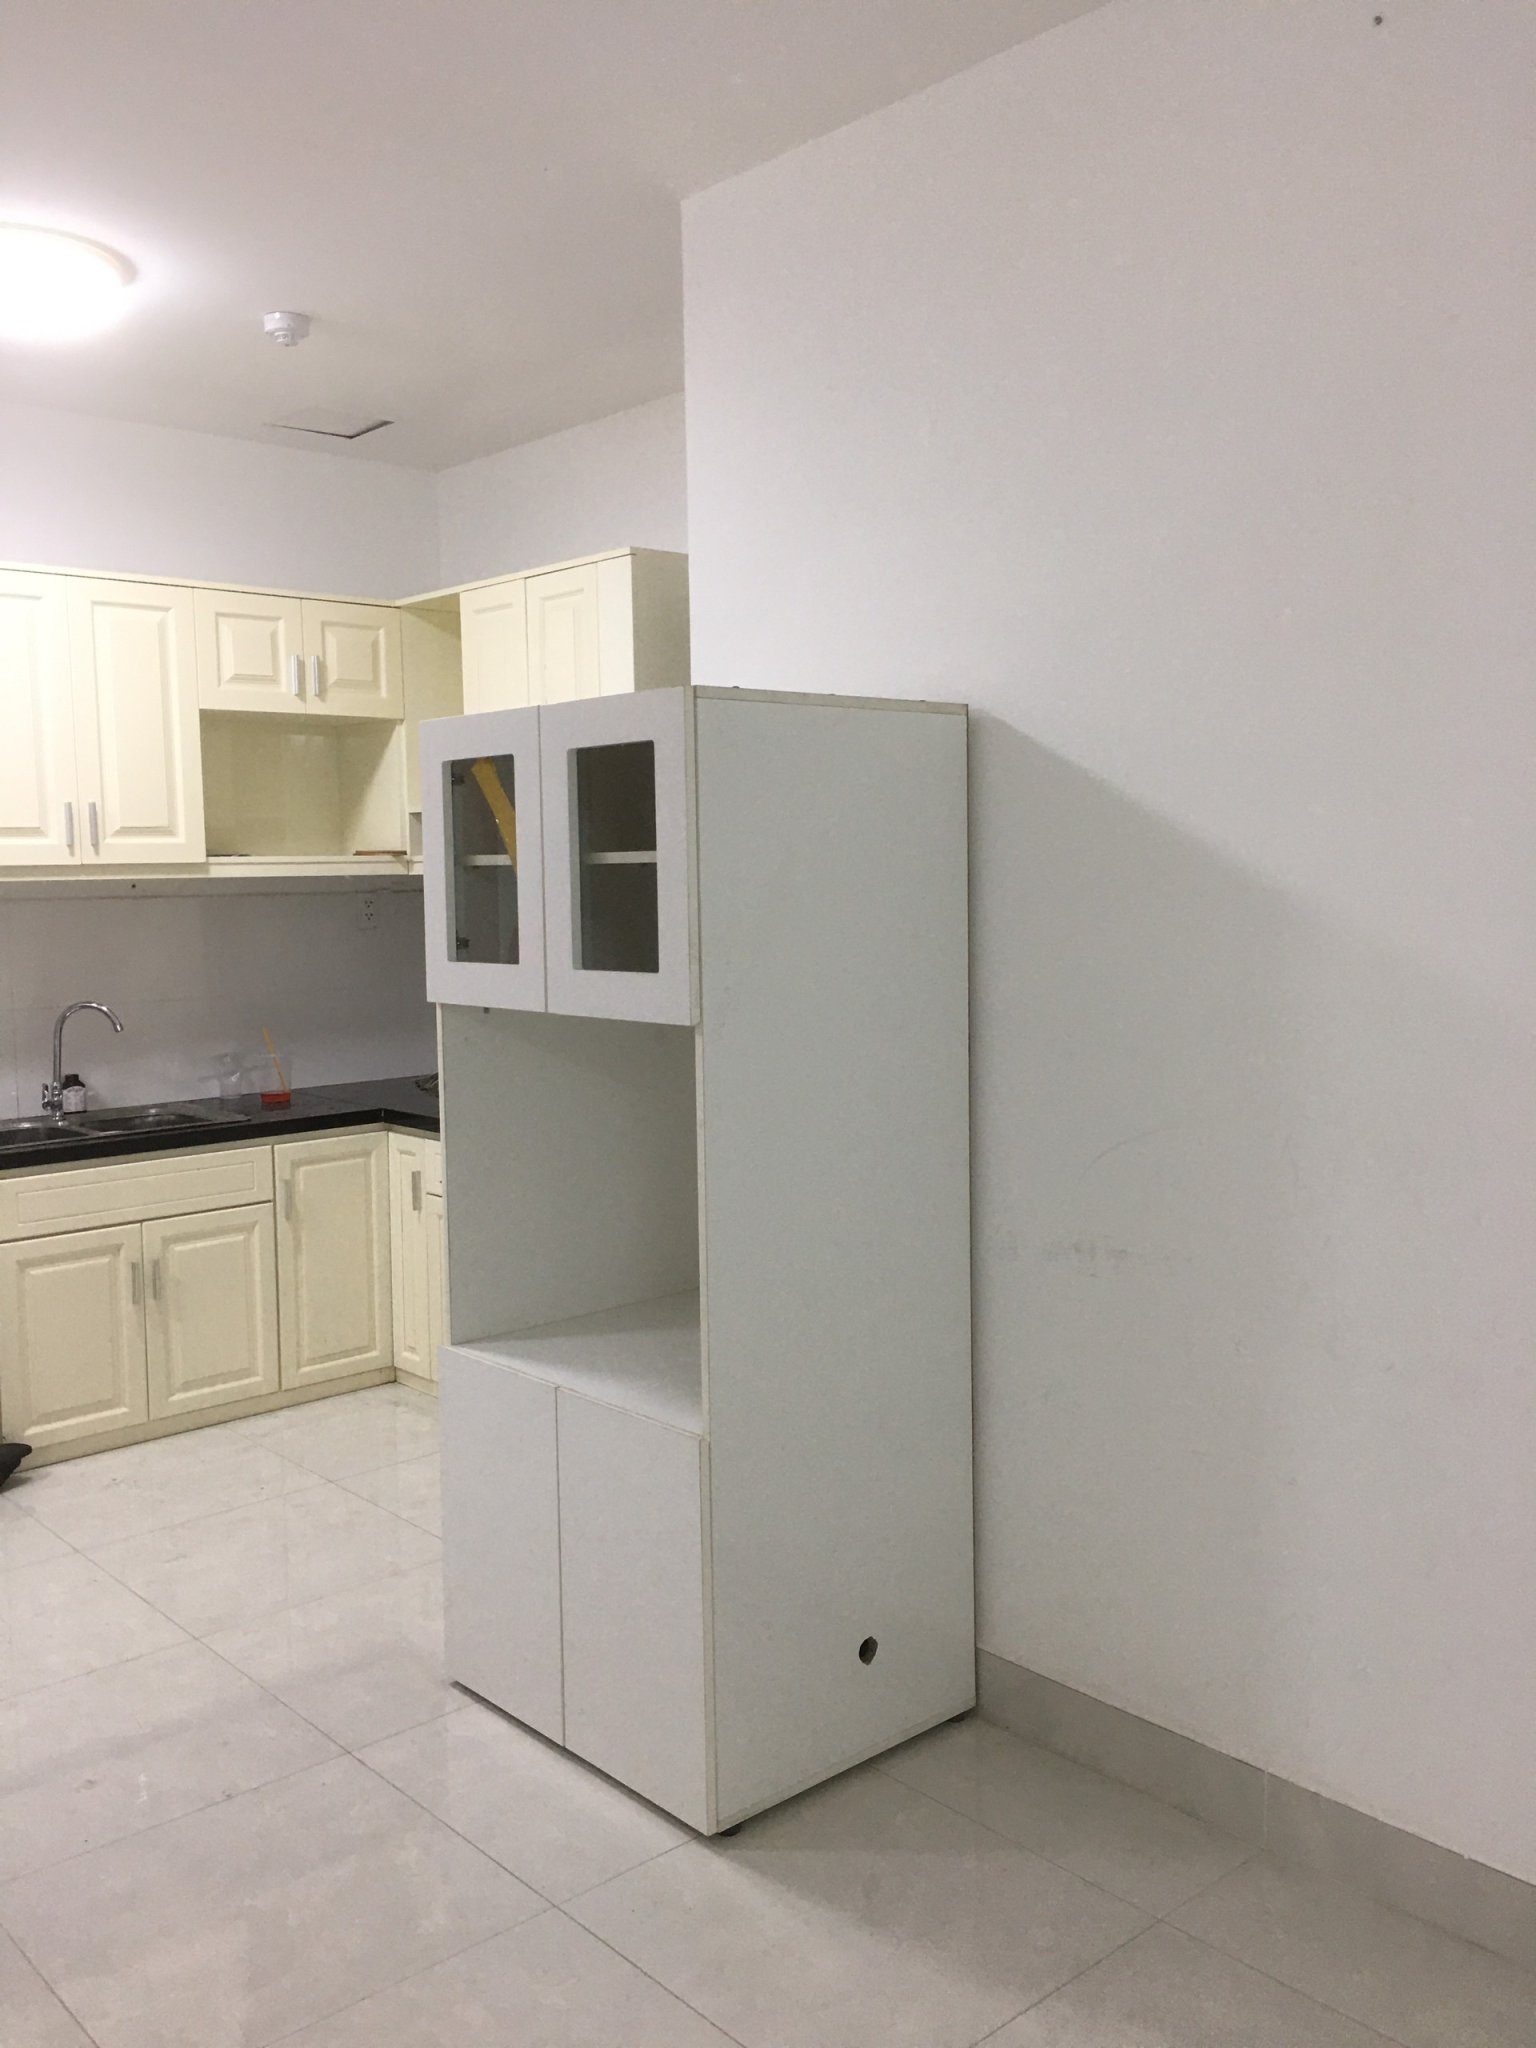 rent Tara Residence - 2 bedroom - 2 wc